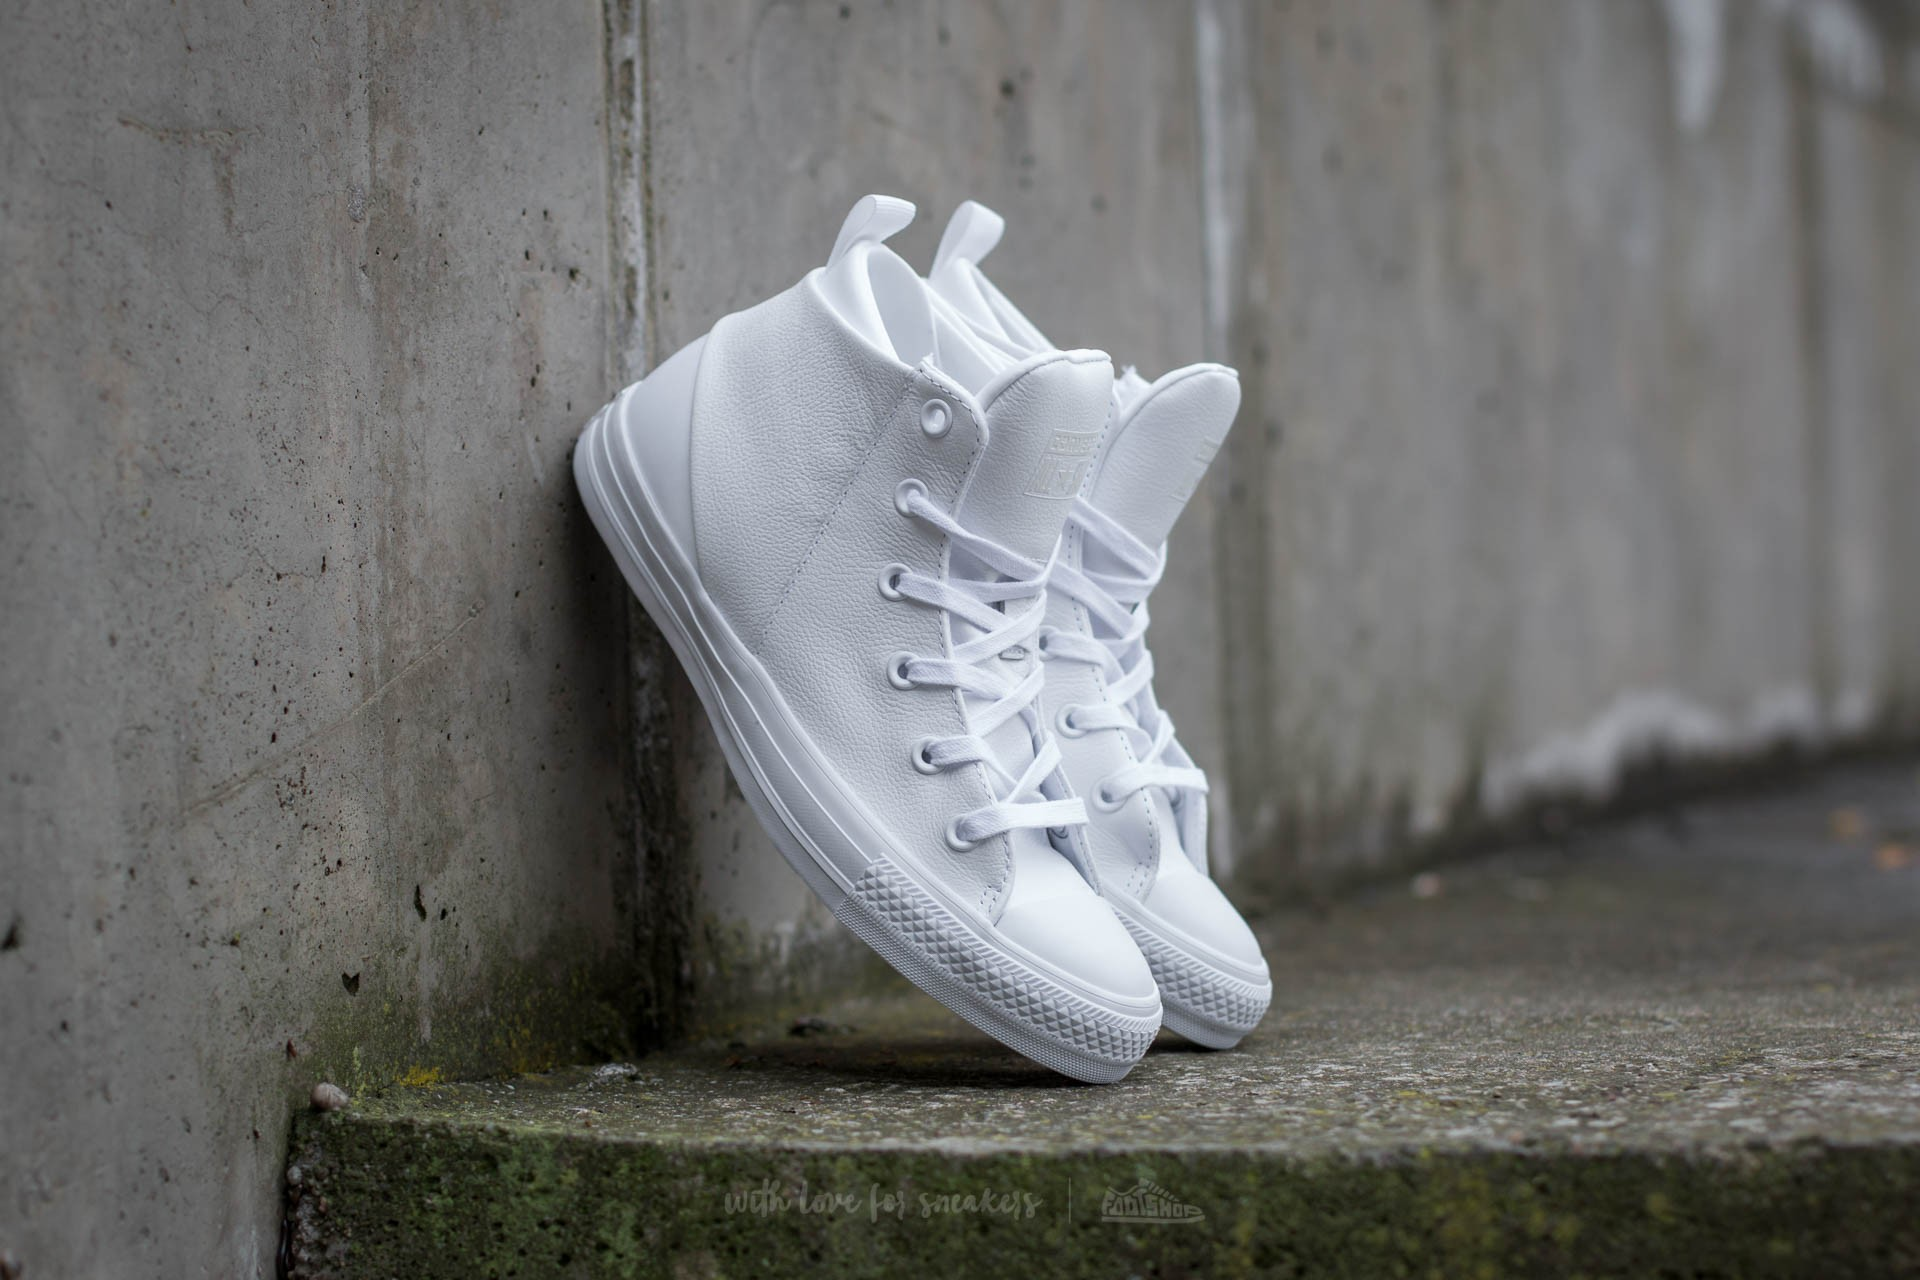 Converse Chuck Taylor All Star Sloane Monochrome Leather White  White  White d70a094d0c